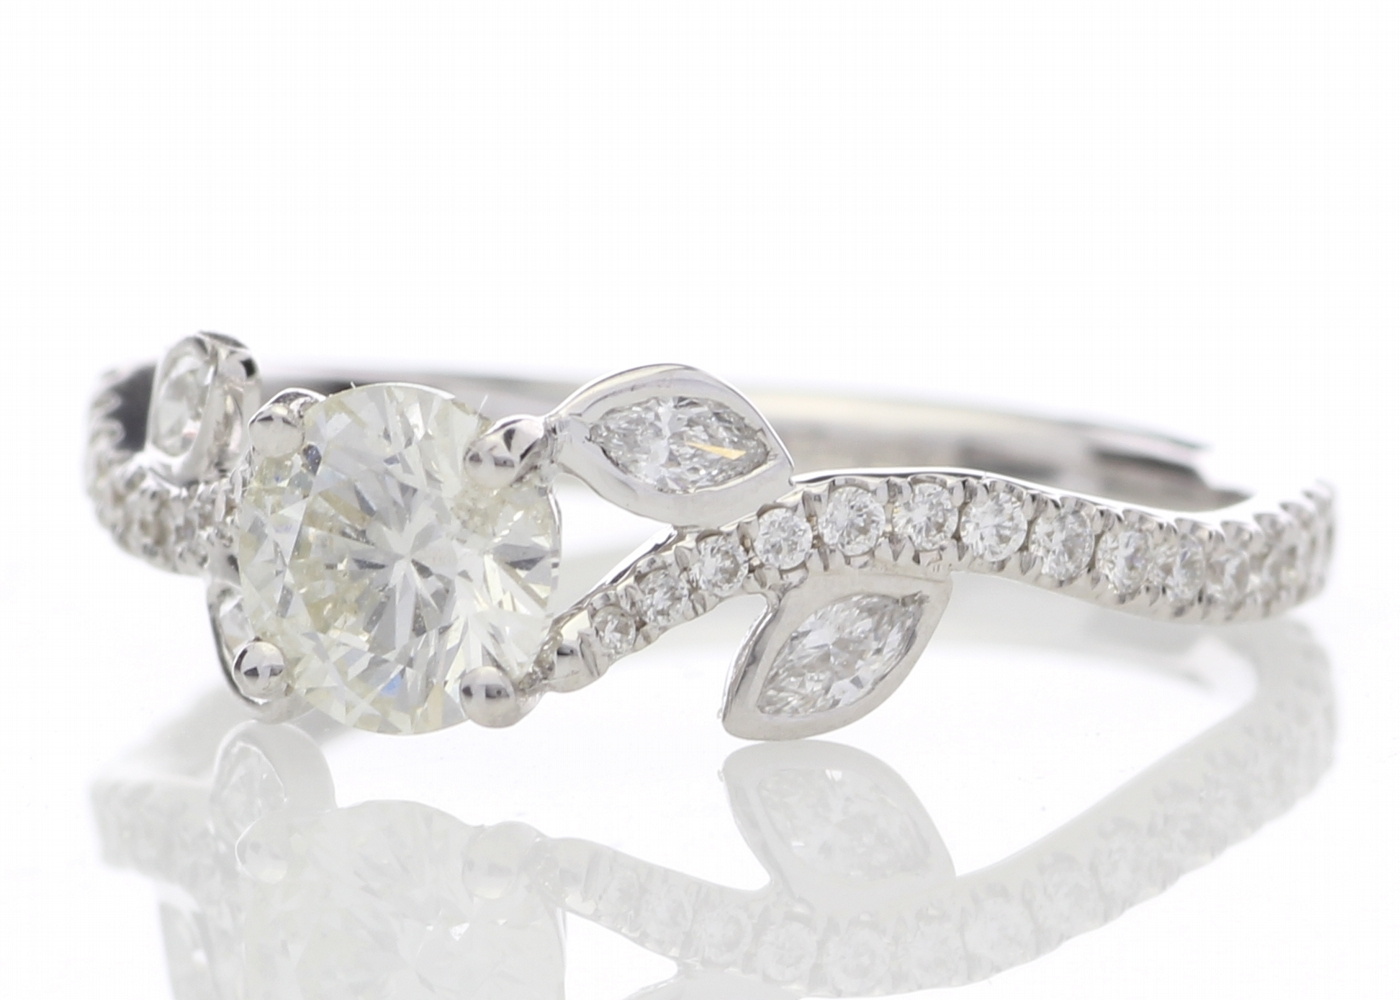 18ct White Gold Single Stone Diamond Ring With Stone Set Shoulders (0.55) 0.91 Carats - Image 2 of 5